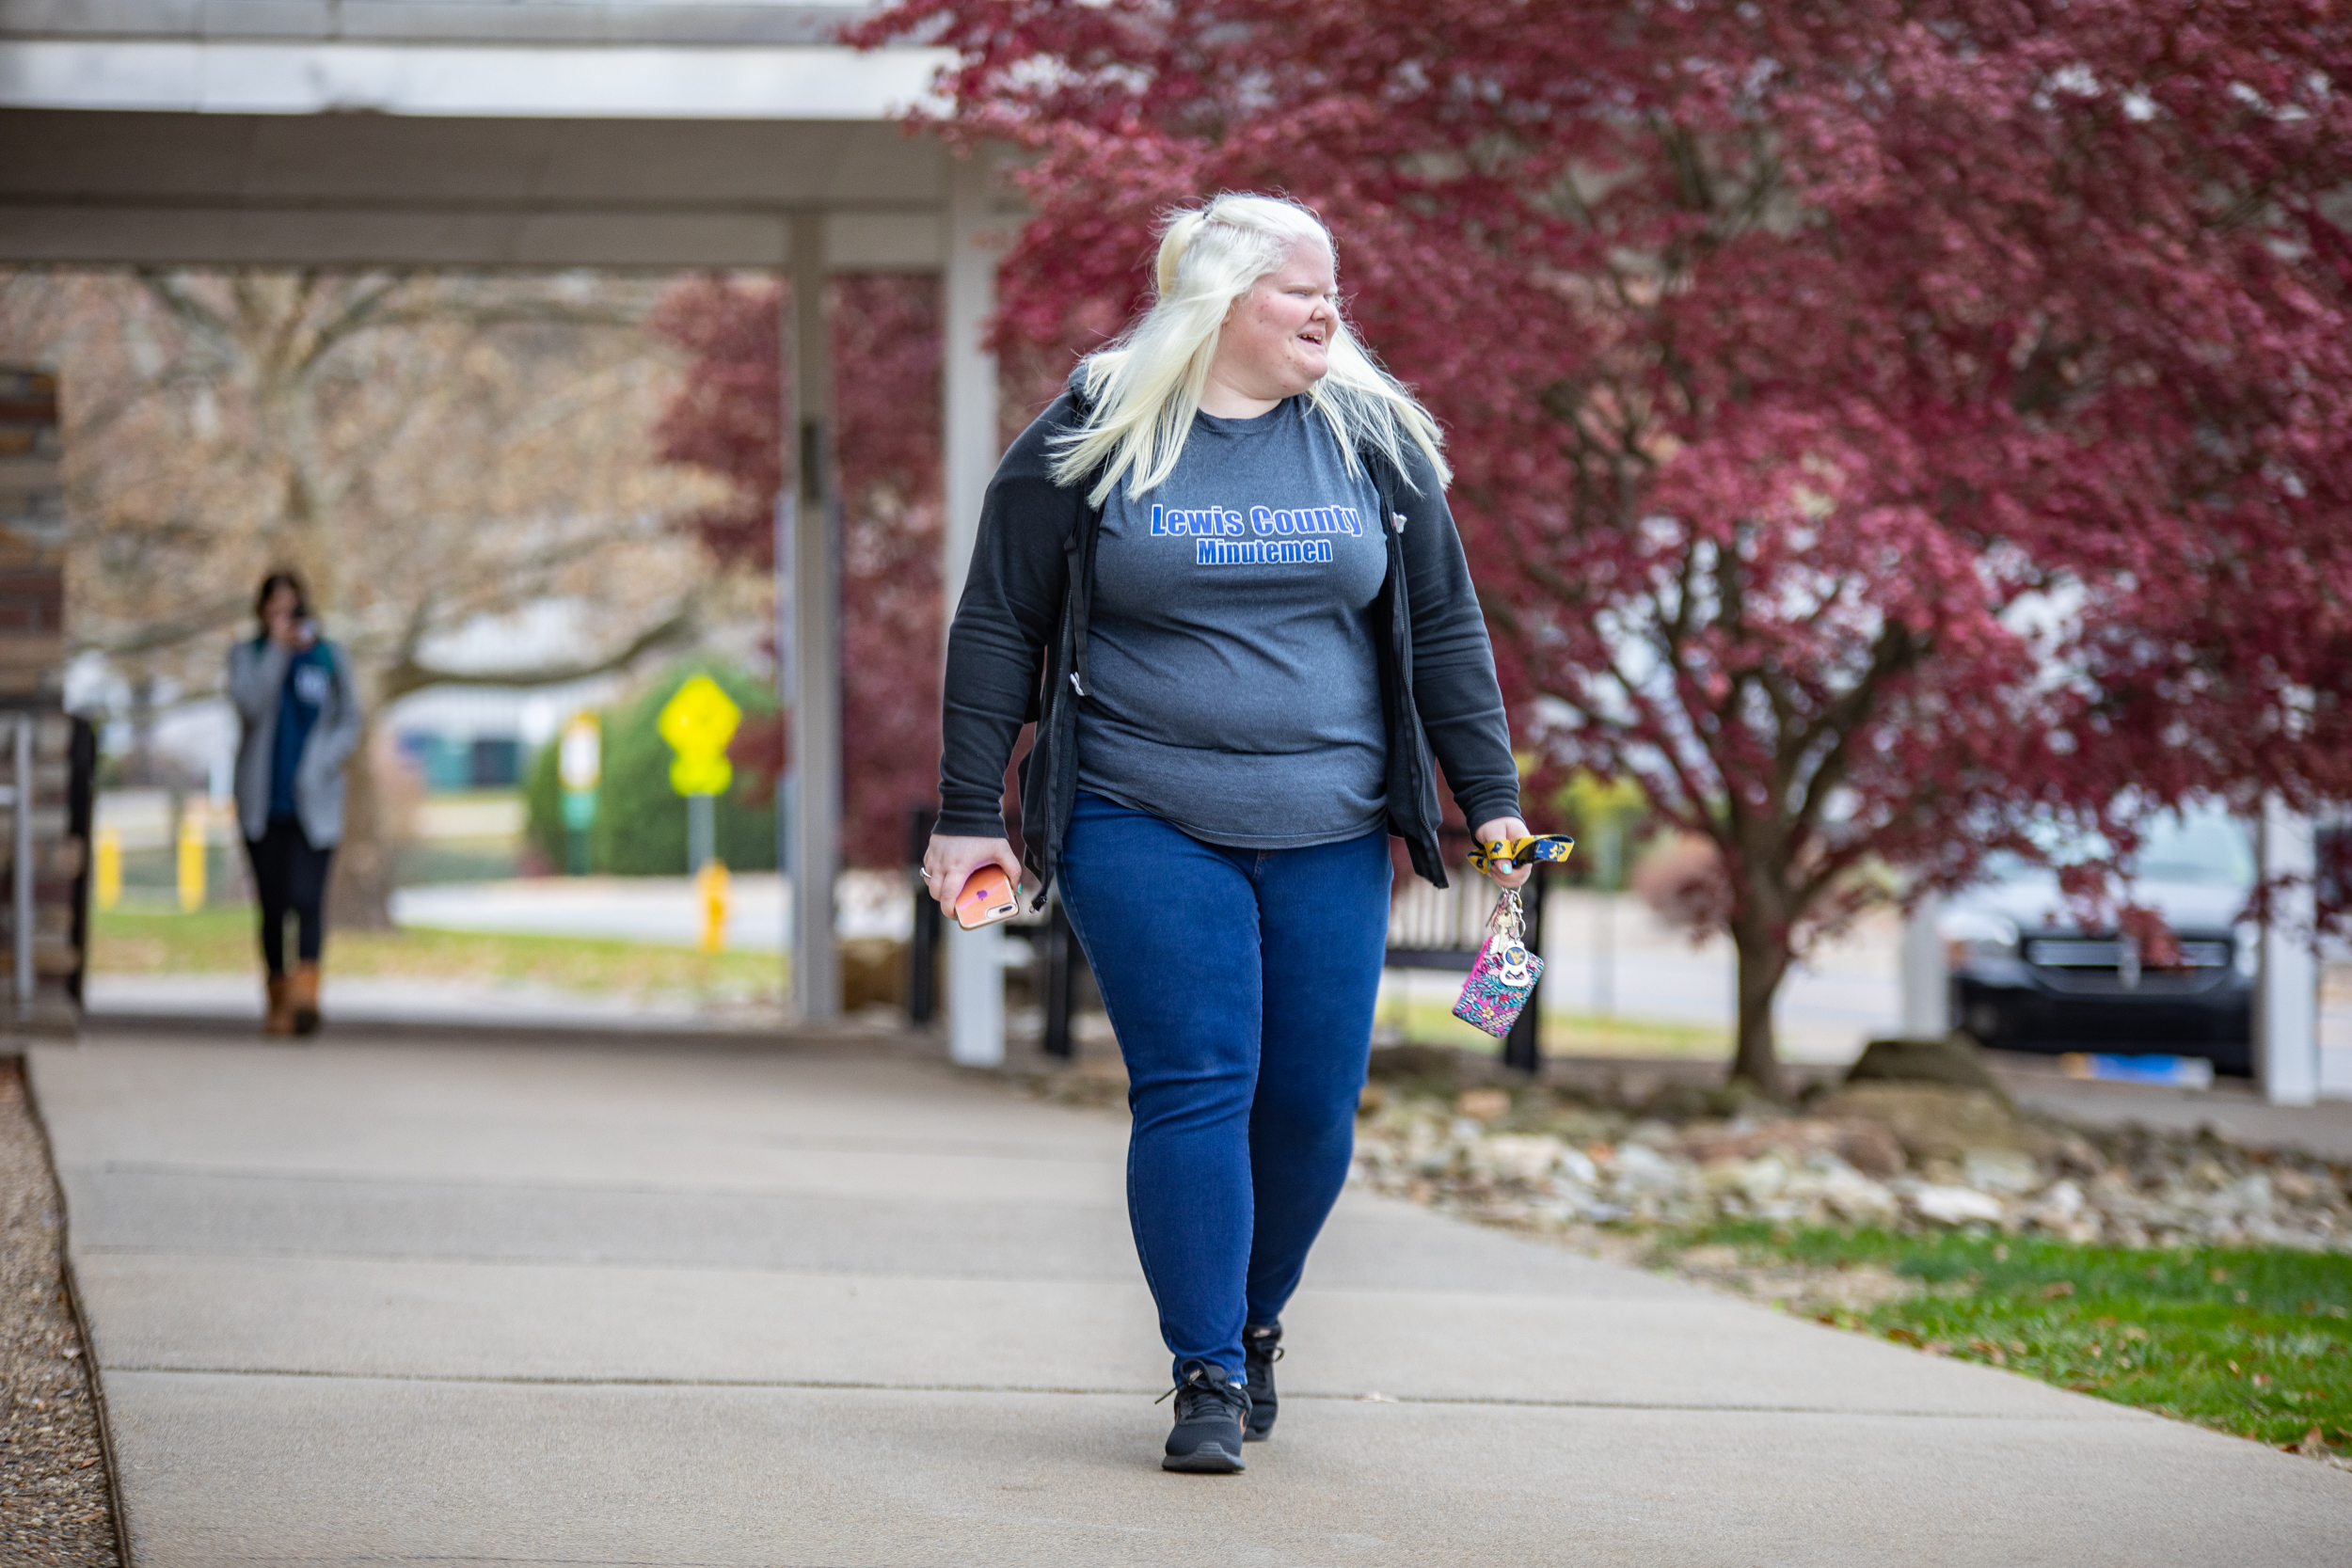 WVU freshman Lauren Clem applies the skills she learned from the WVU Eye Institute's Children's Vision Rehabilitation Program to navigate campus each day.